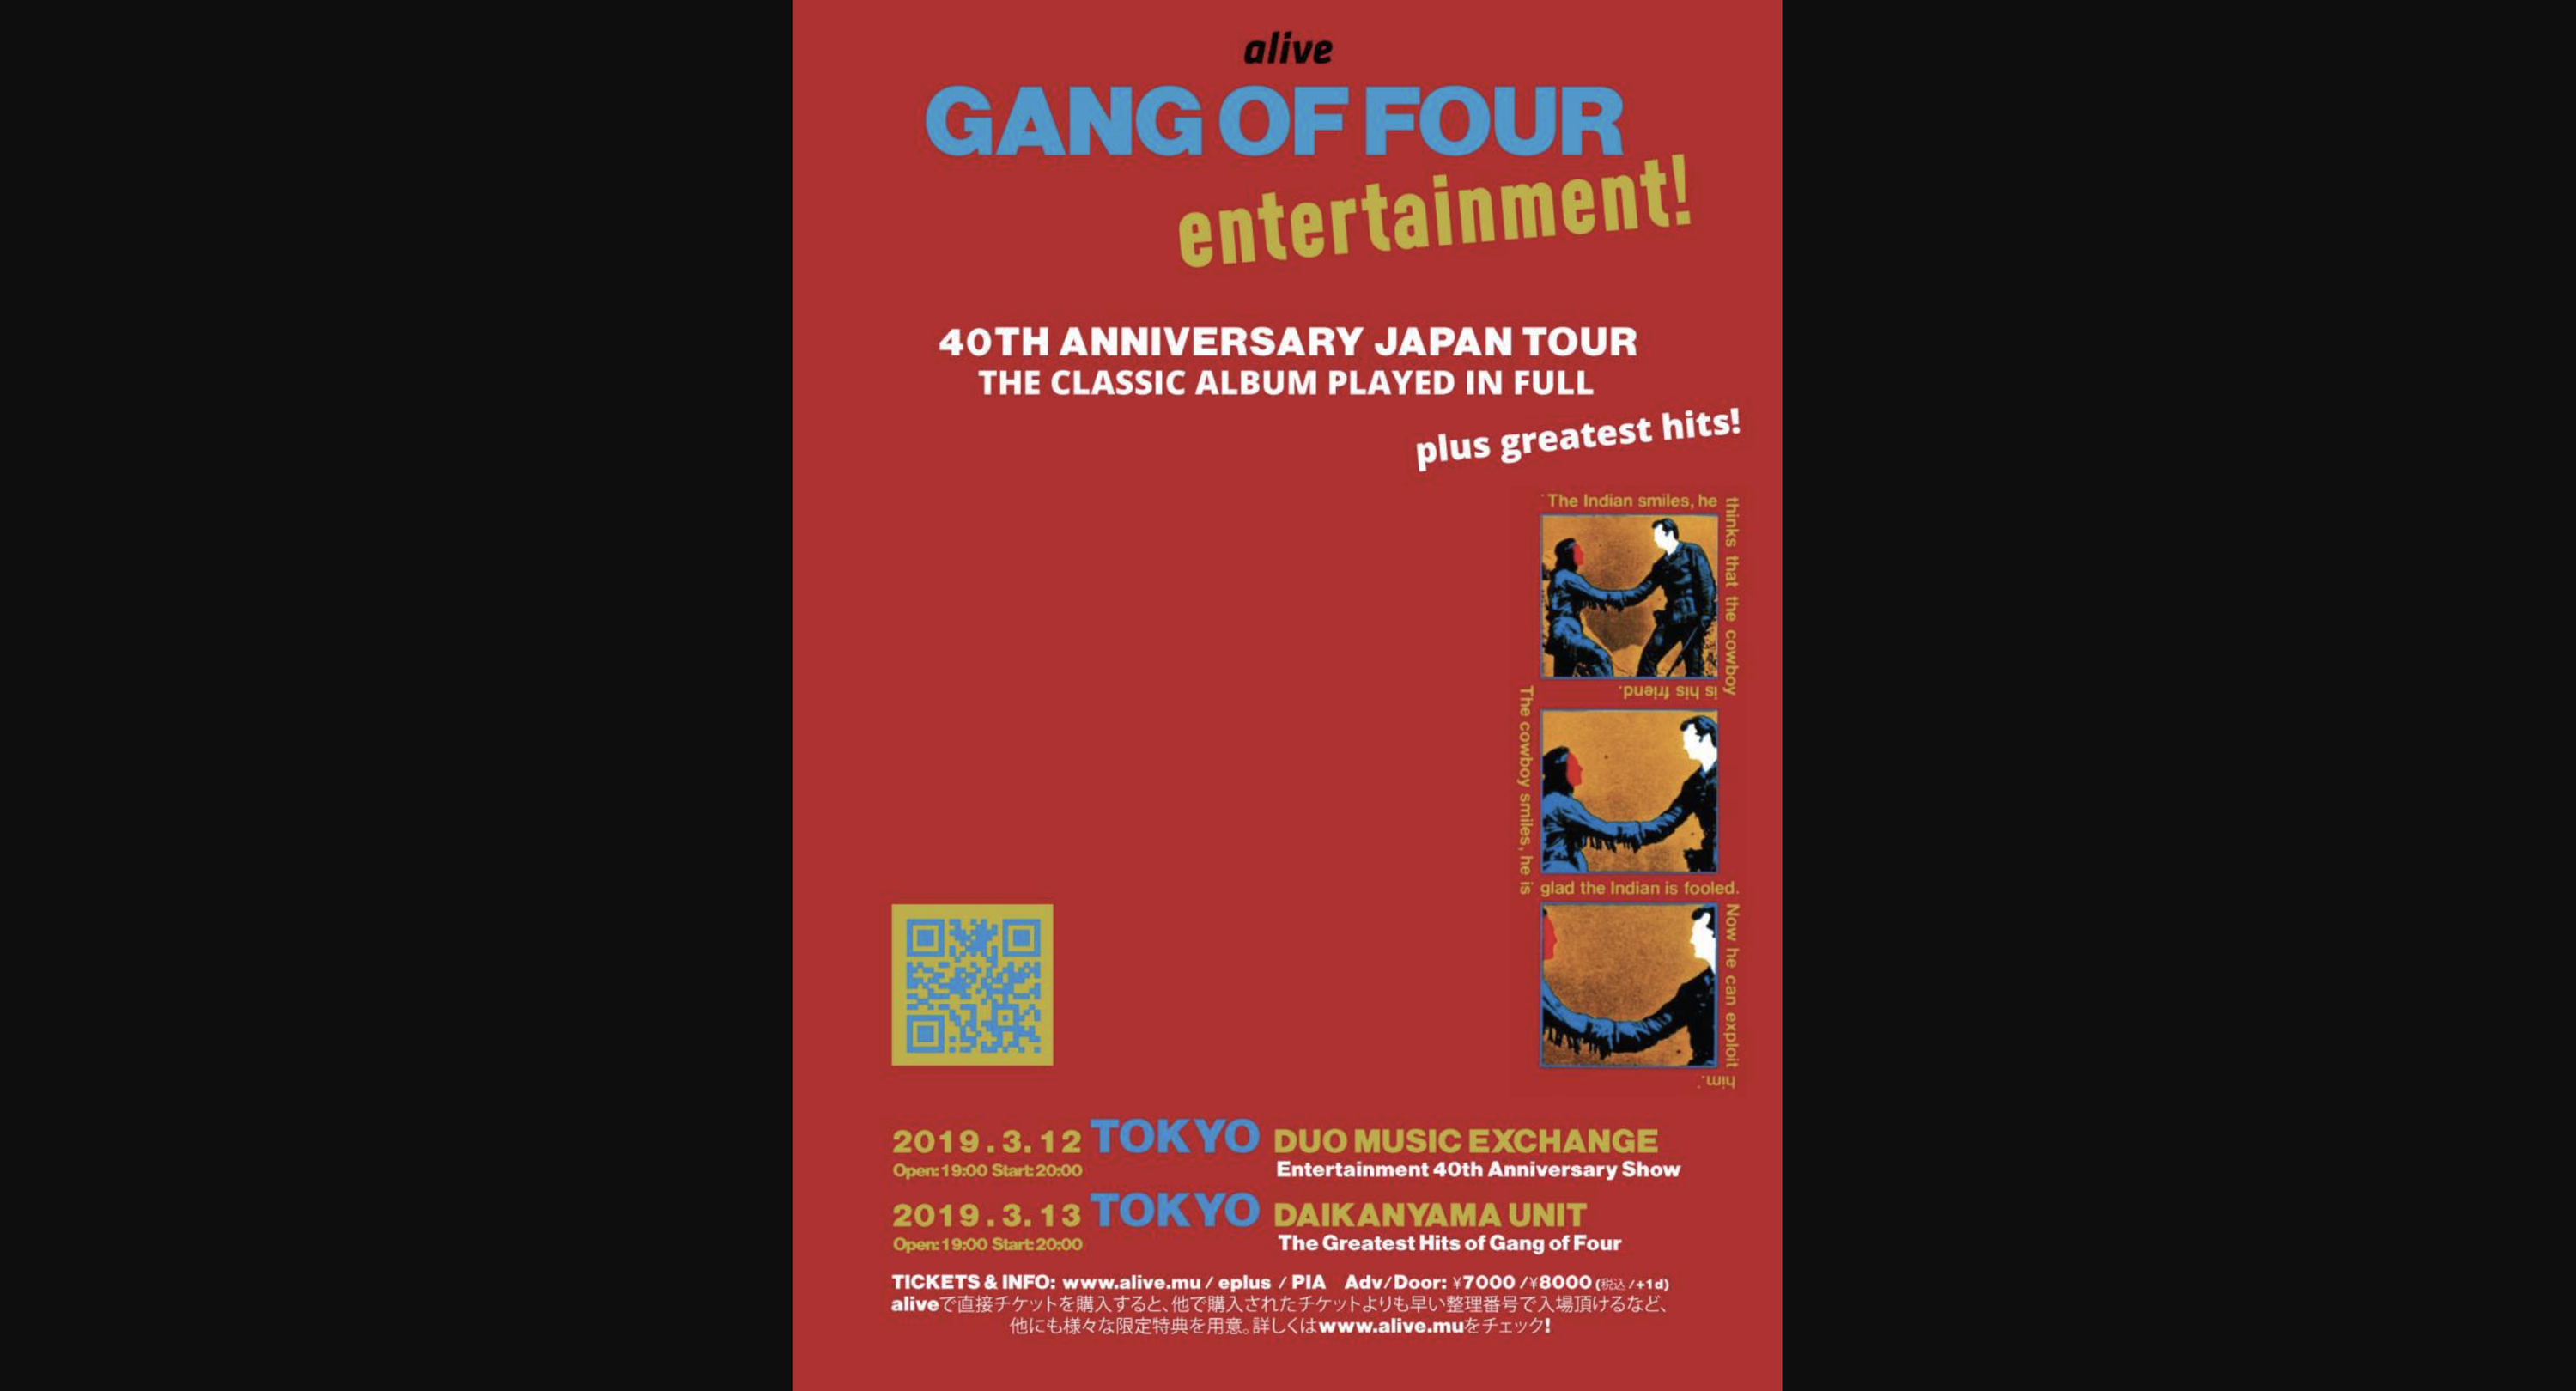 Gang of Four - Entertainment! 40th Anniversary Show